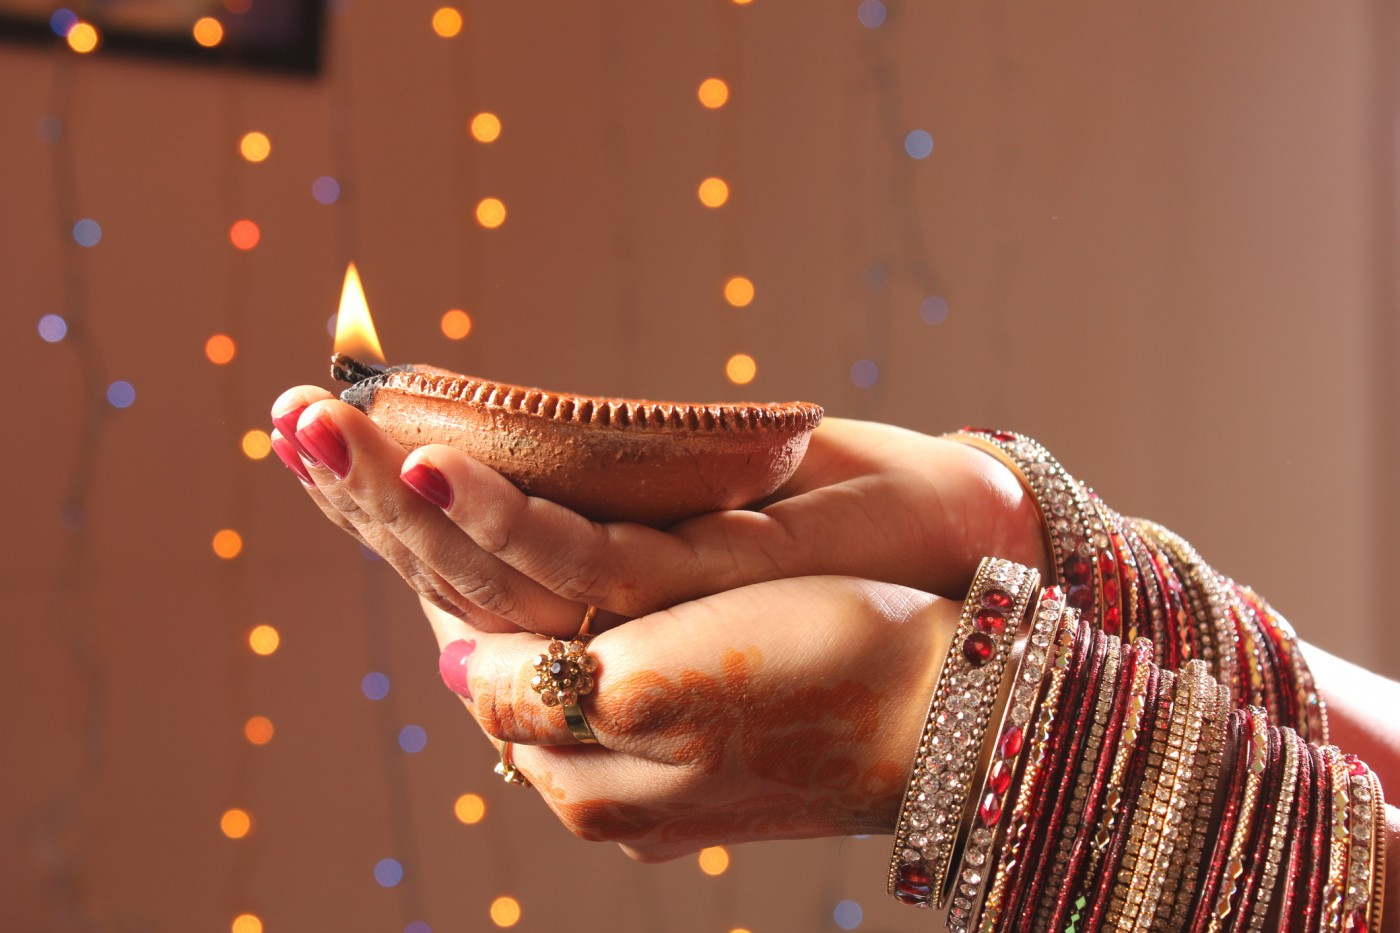 Hands holding a candle for Diwali